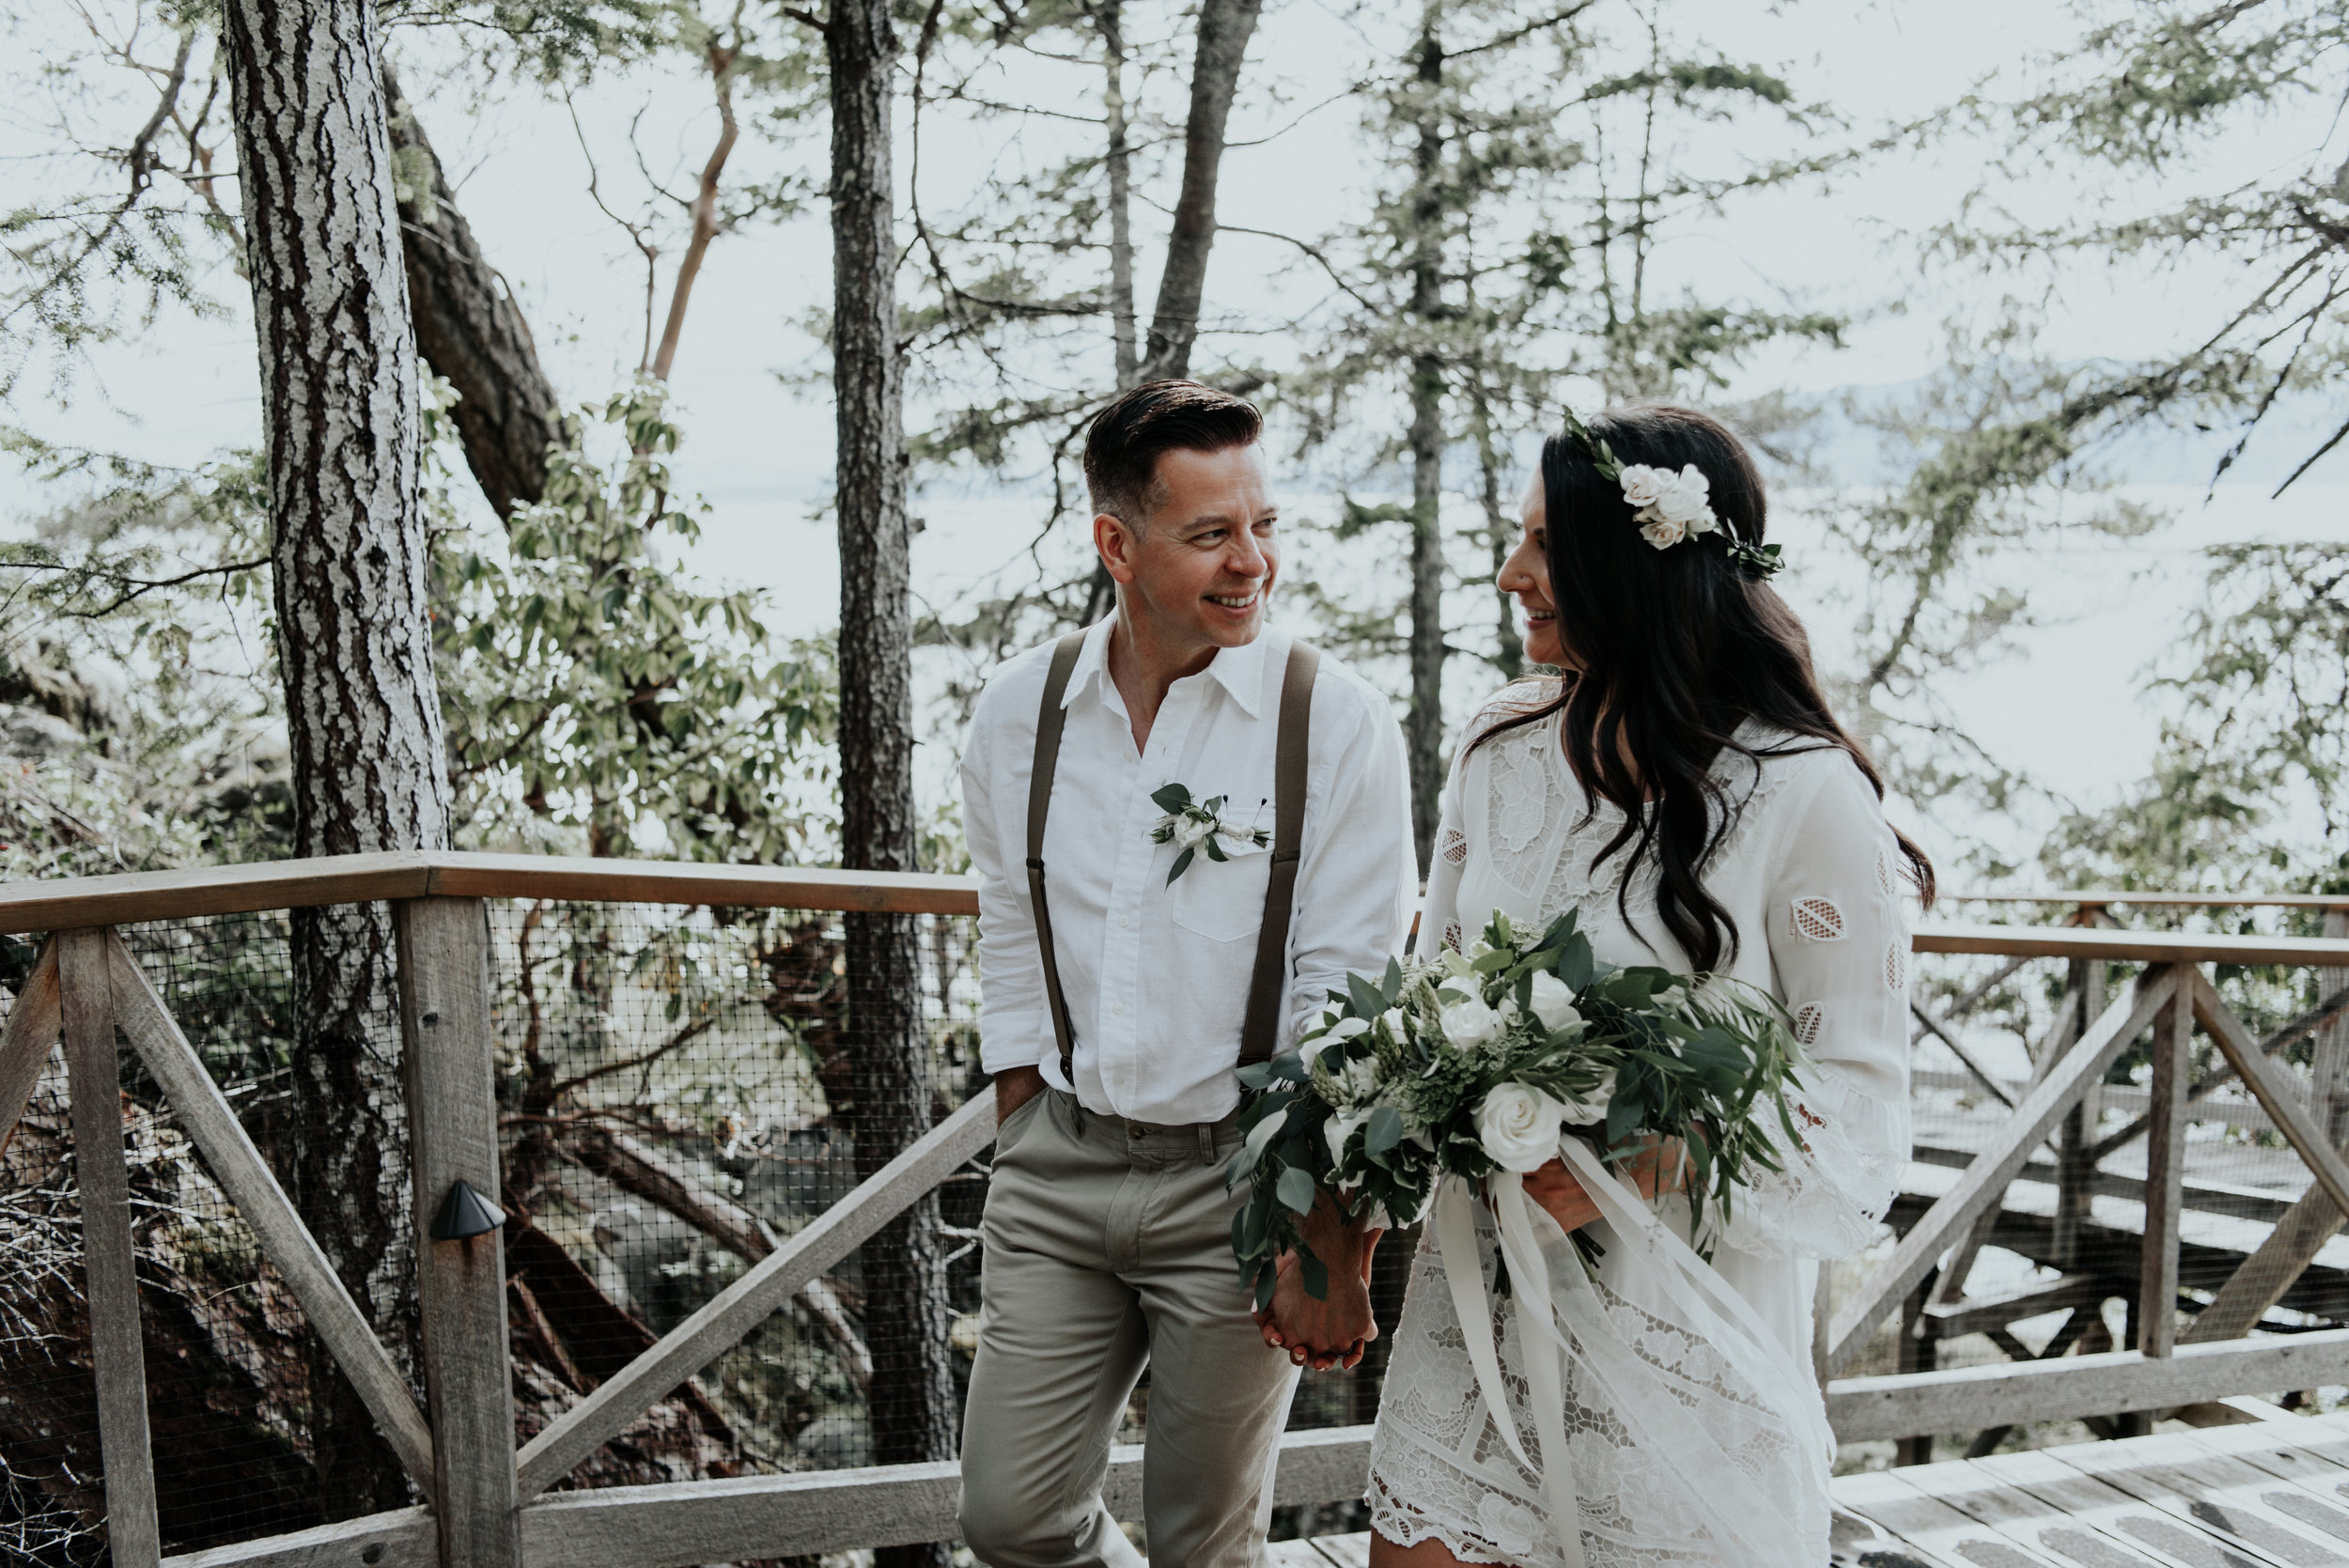 Ashley + Jeff - Rockwater Resort Elopement - Sunshine Coast BC Photographer - Laura Olson Photography-3891.jpg